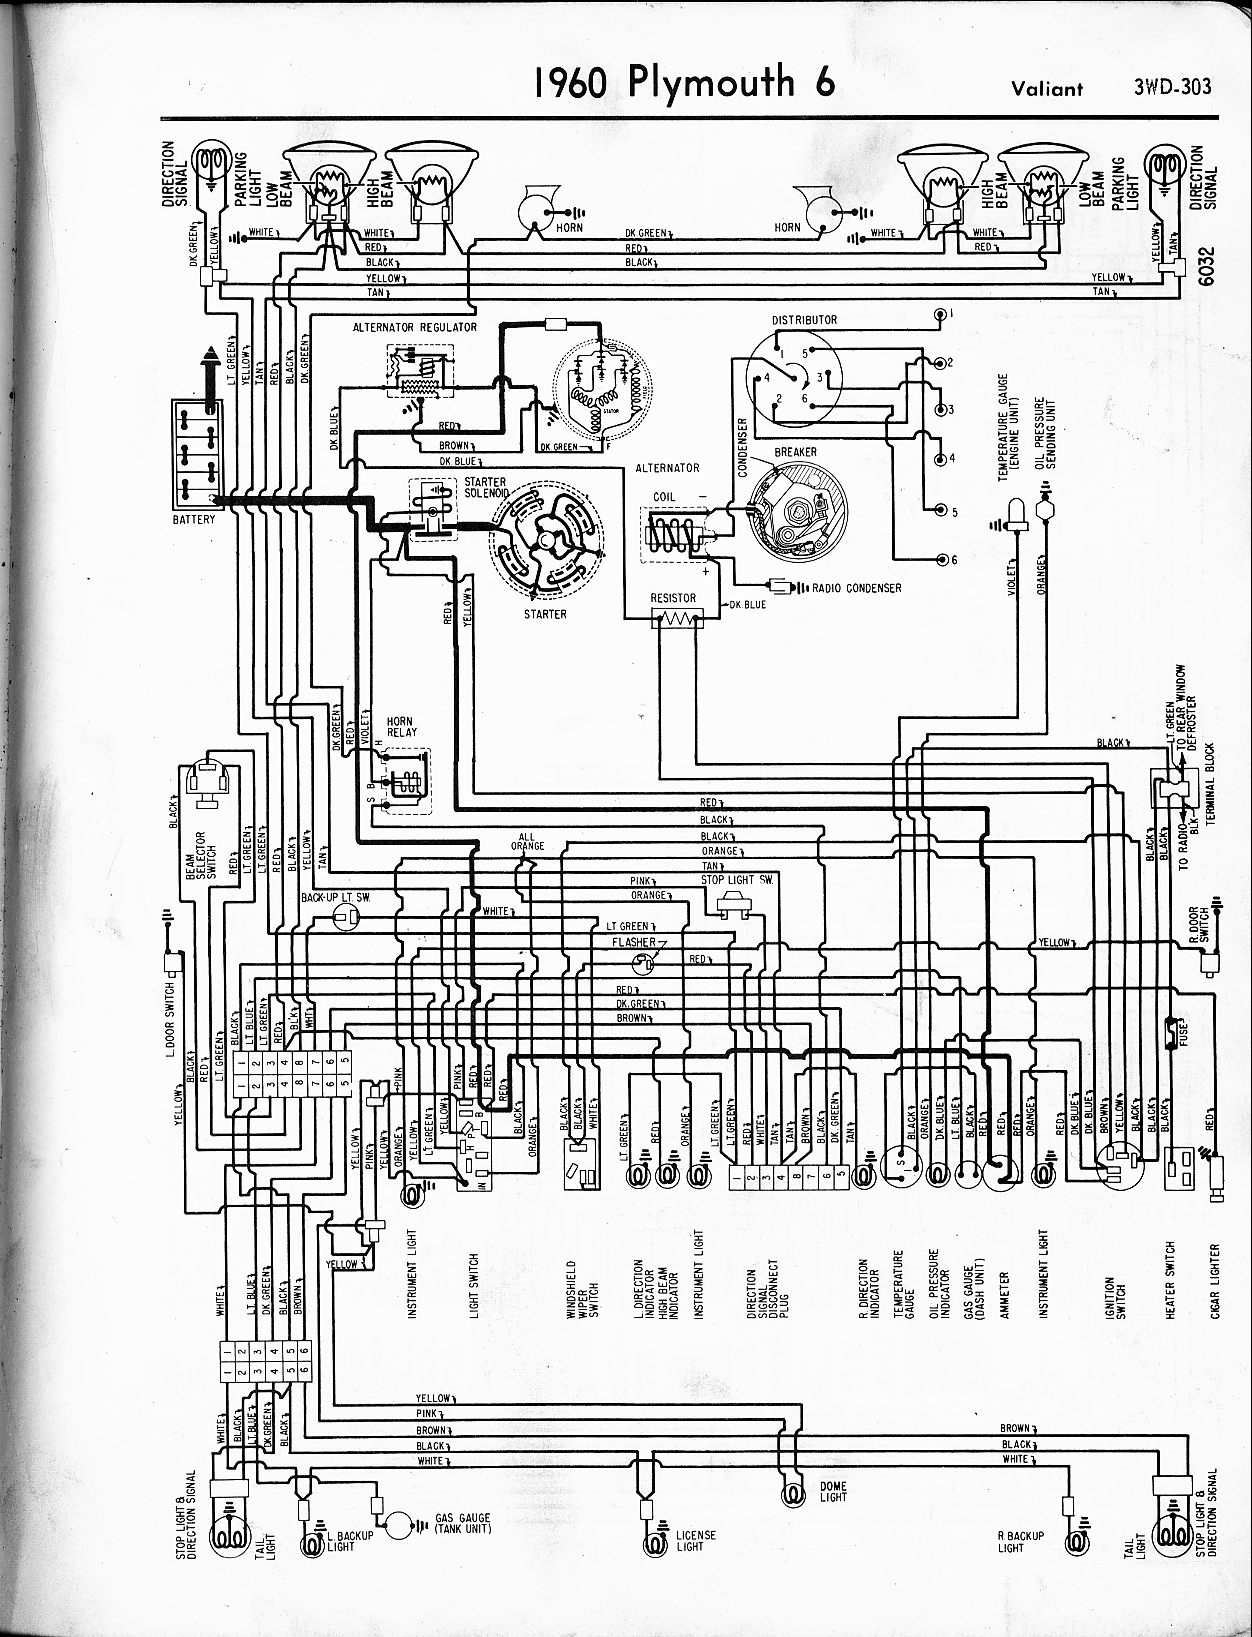 68 valiant wiring diagram ad 1125  1966 plymouth fury wiring diagram  ad 1125  1966 plymouth fury wiring diagram